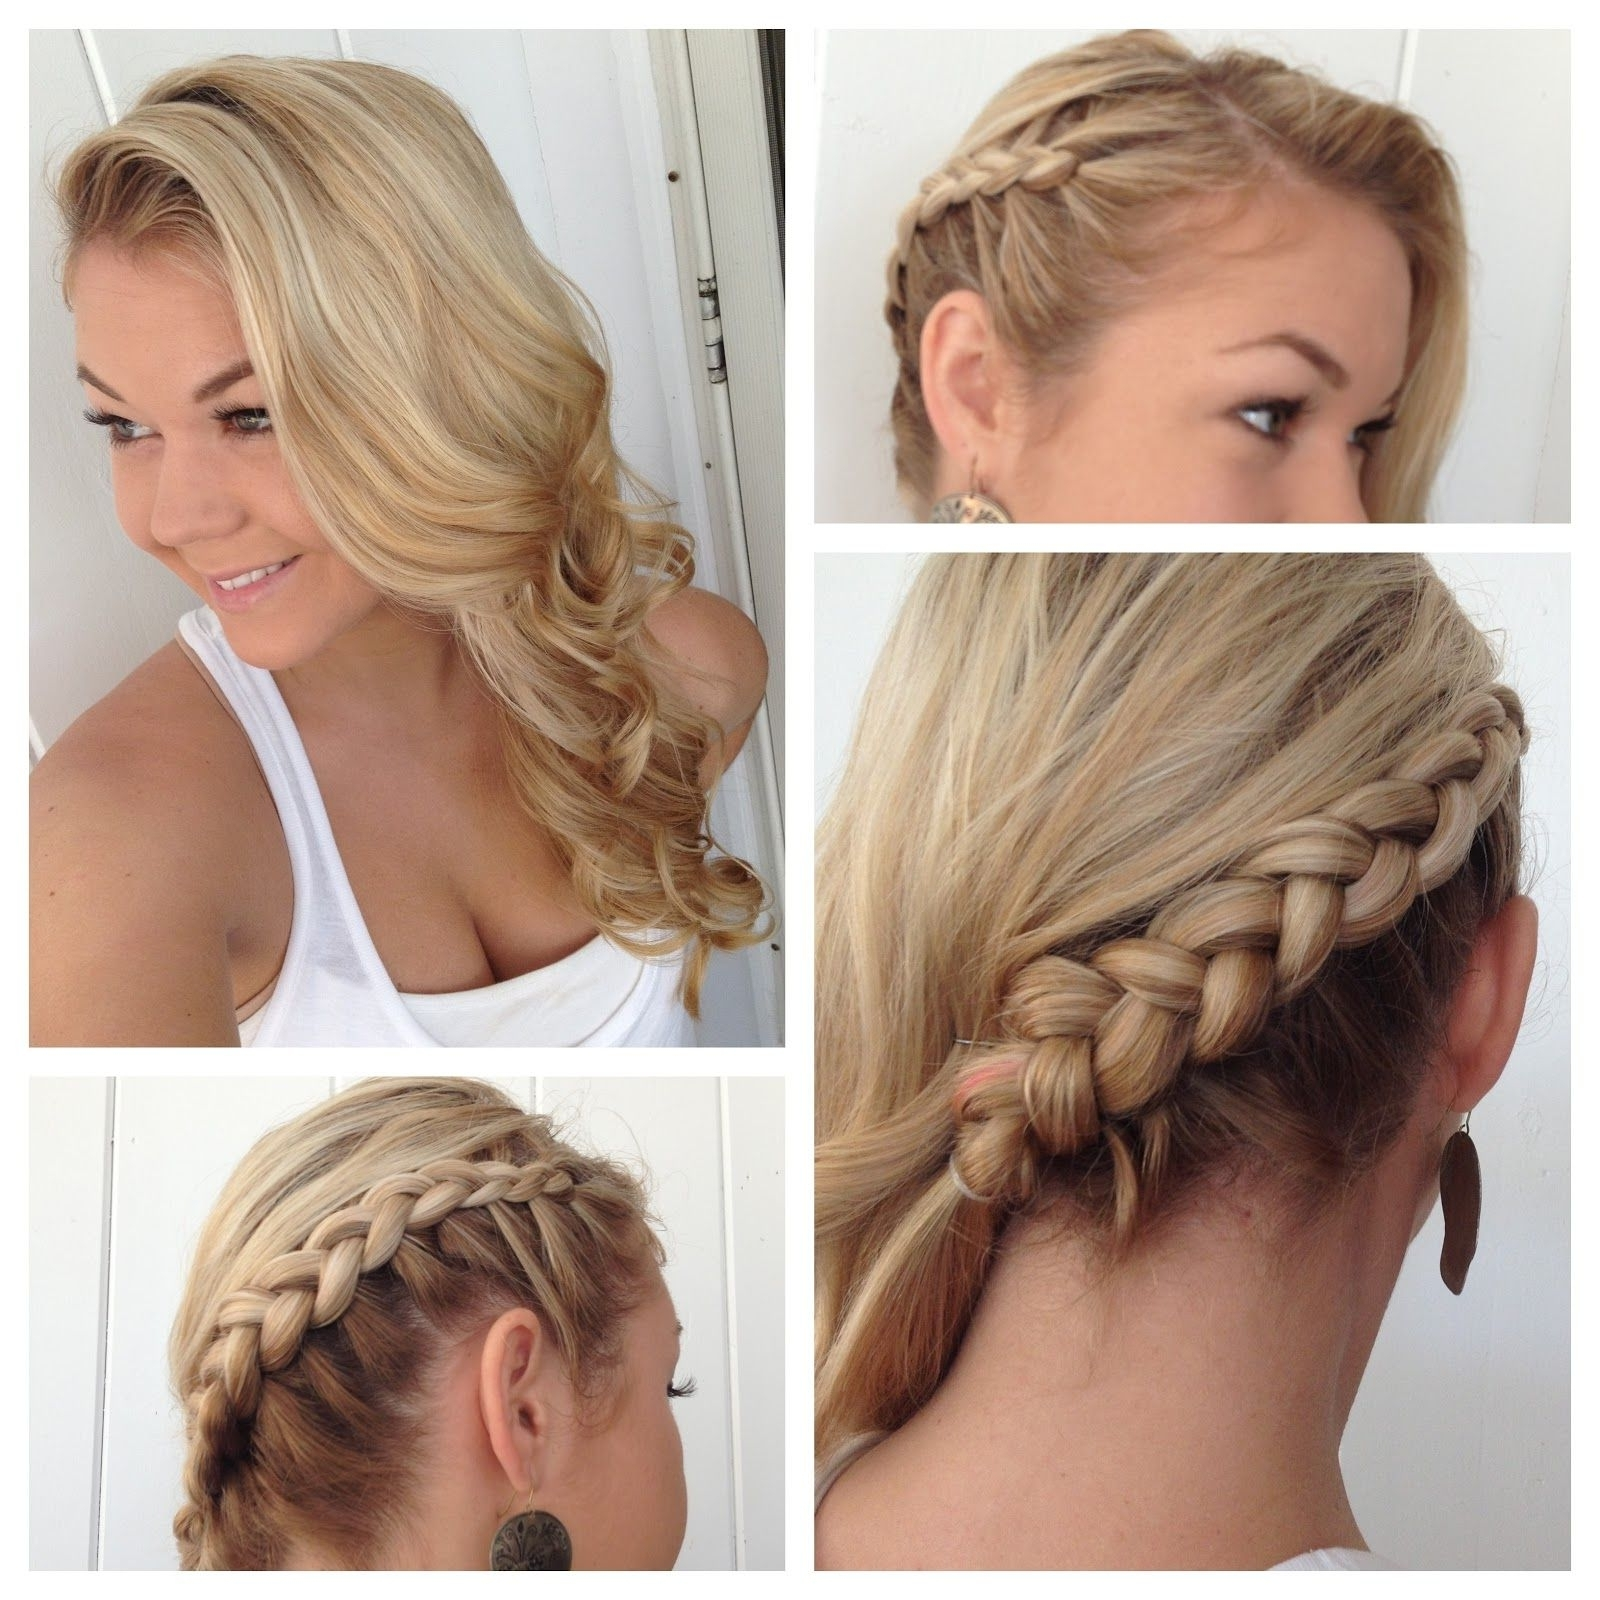 2018 Braided Hairstyles On The Side Pertaining To Side Braid Hairstyles (View 4 of 15)